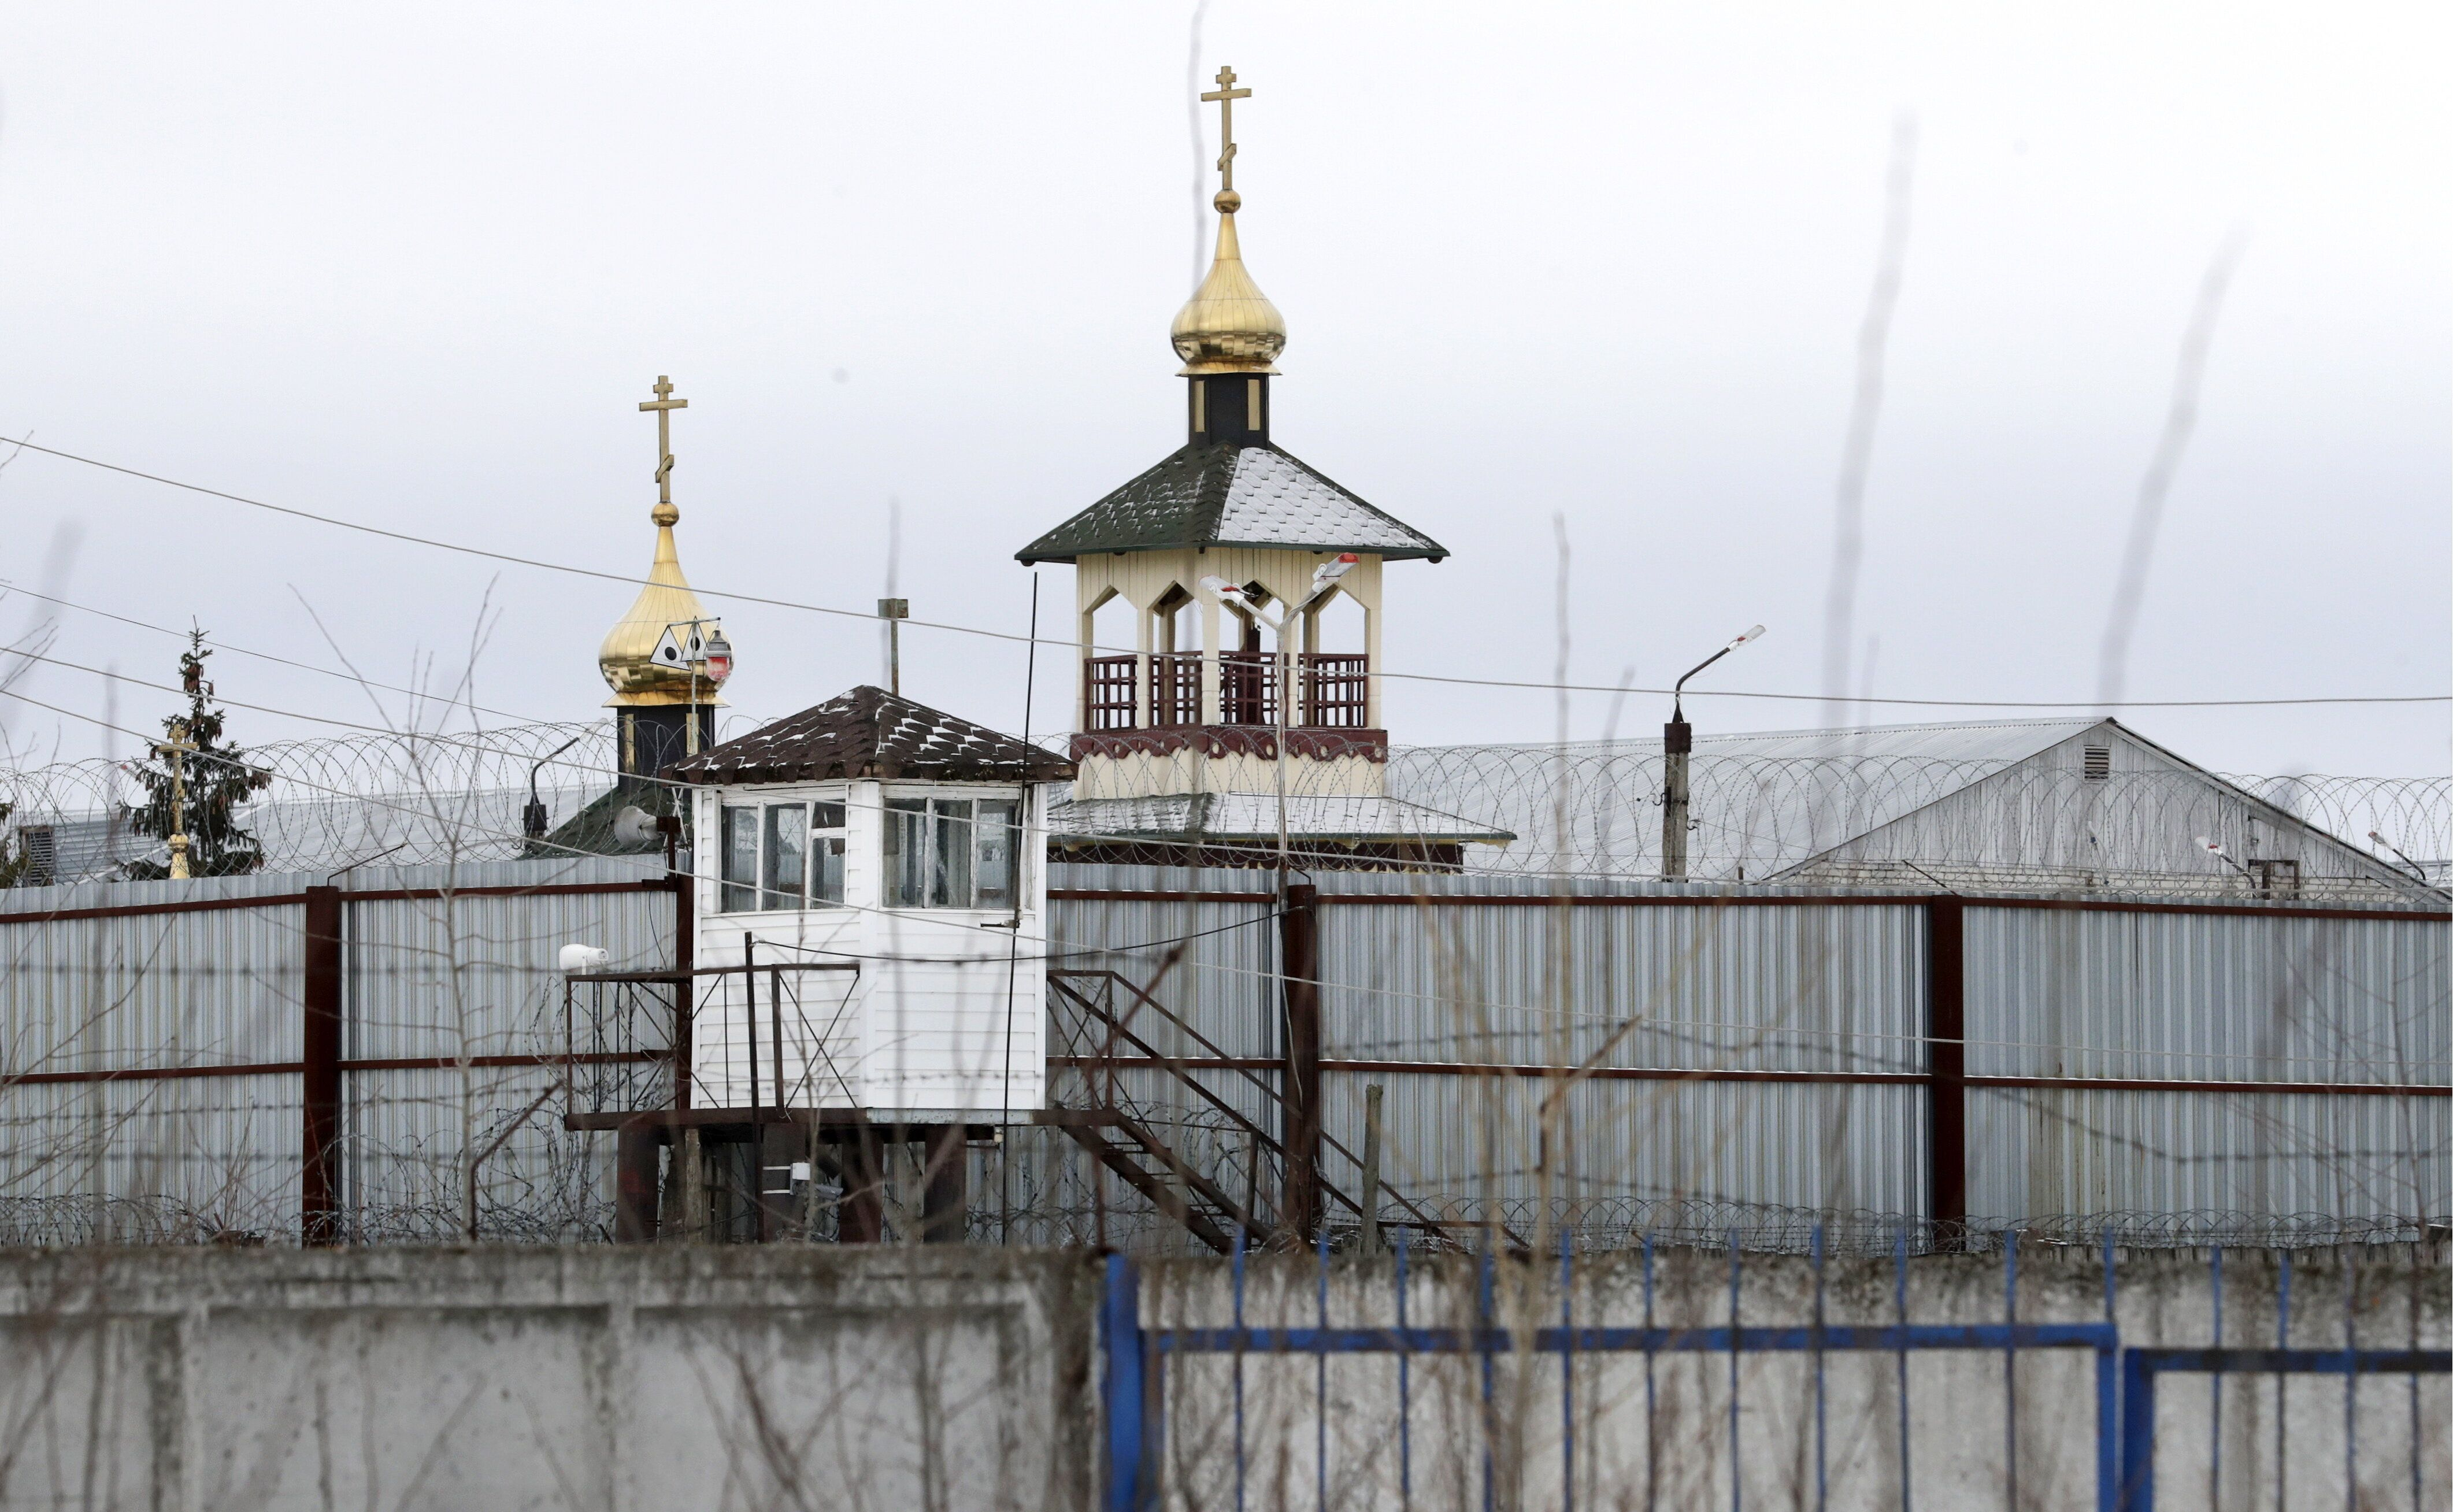 Convicted opposition activist Alexei Navalny is serving his sentence at Penal Colony No 2, near the town of Pokrov.